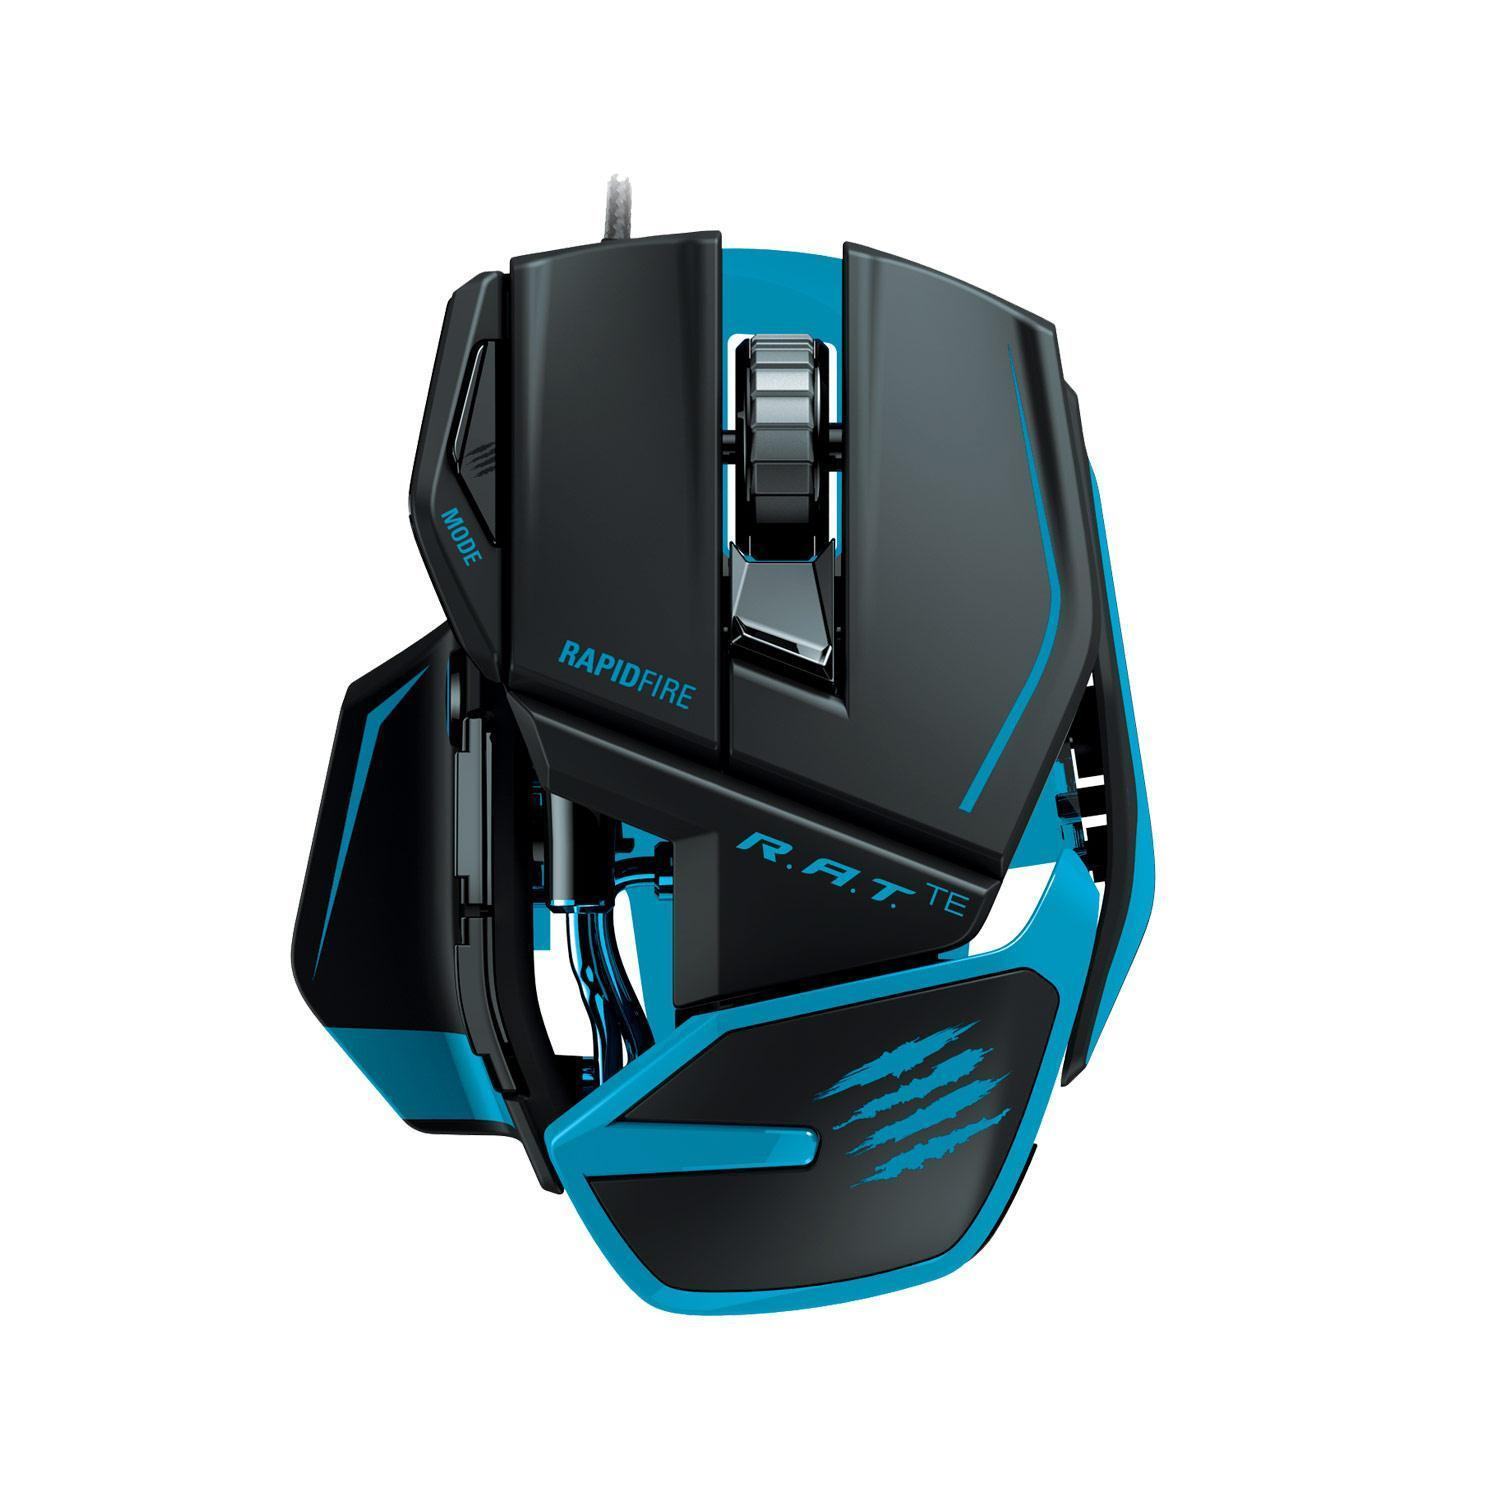 Mad Catz R.A.T. TE Tournament Edition Gaming Mouse for PC and Mac